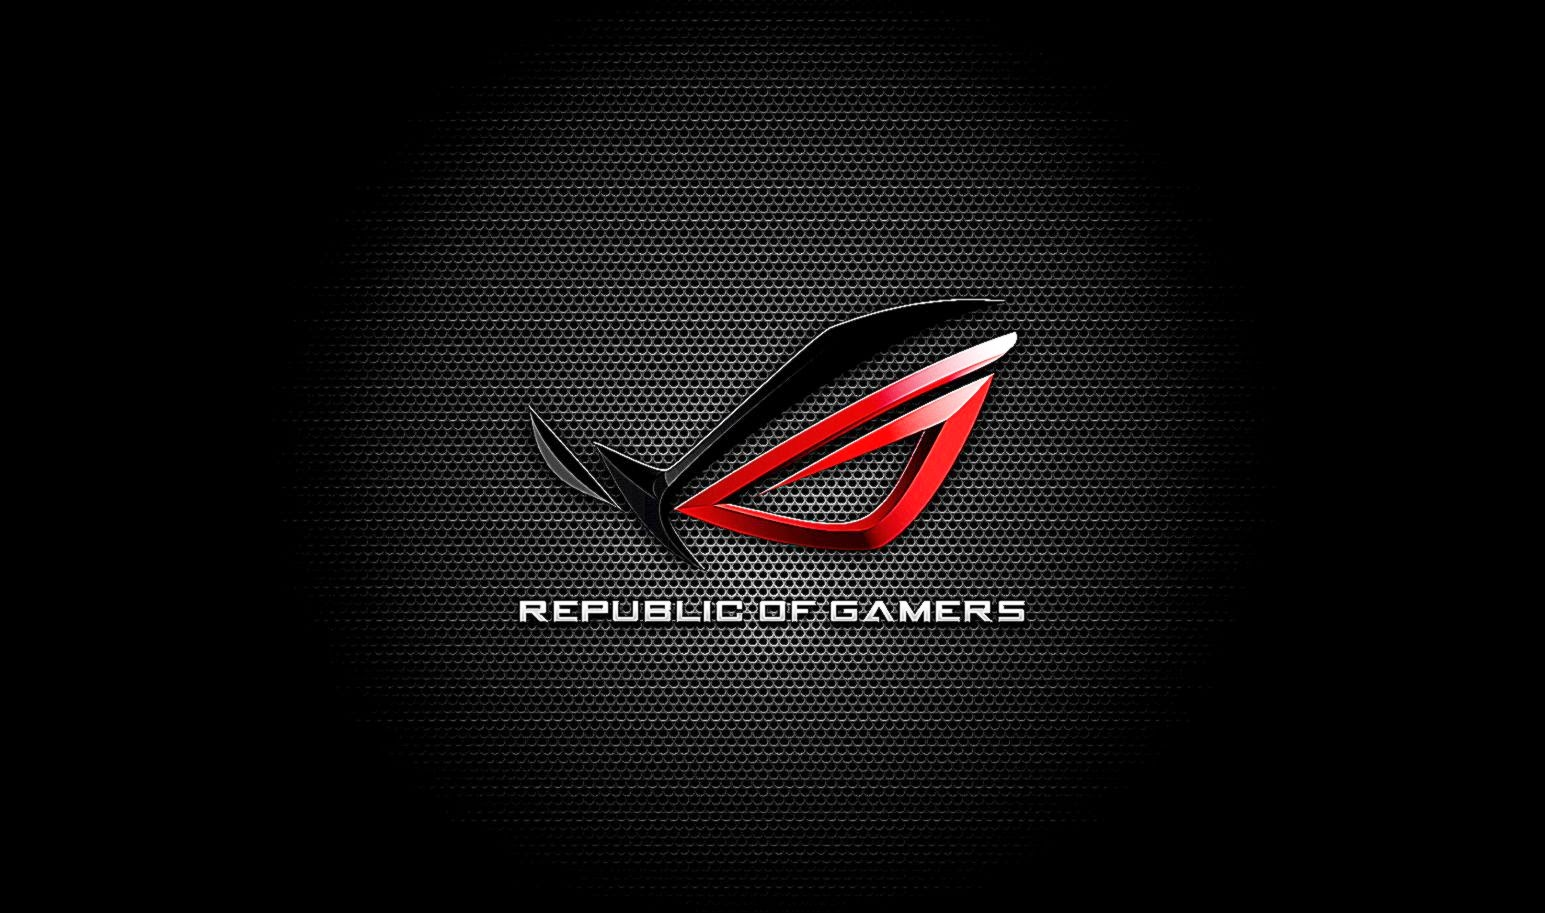 Asus Rog Wallpaper: ASUS ROG HD Wallpaper